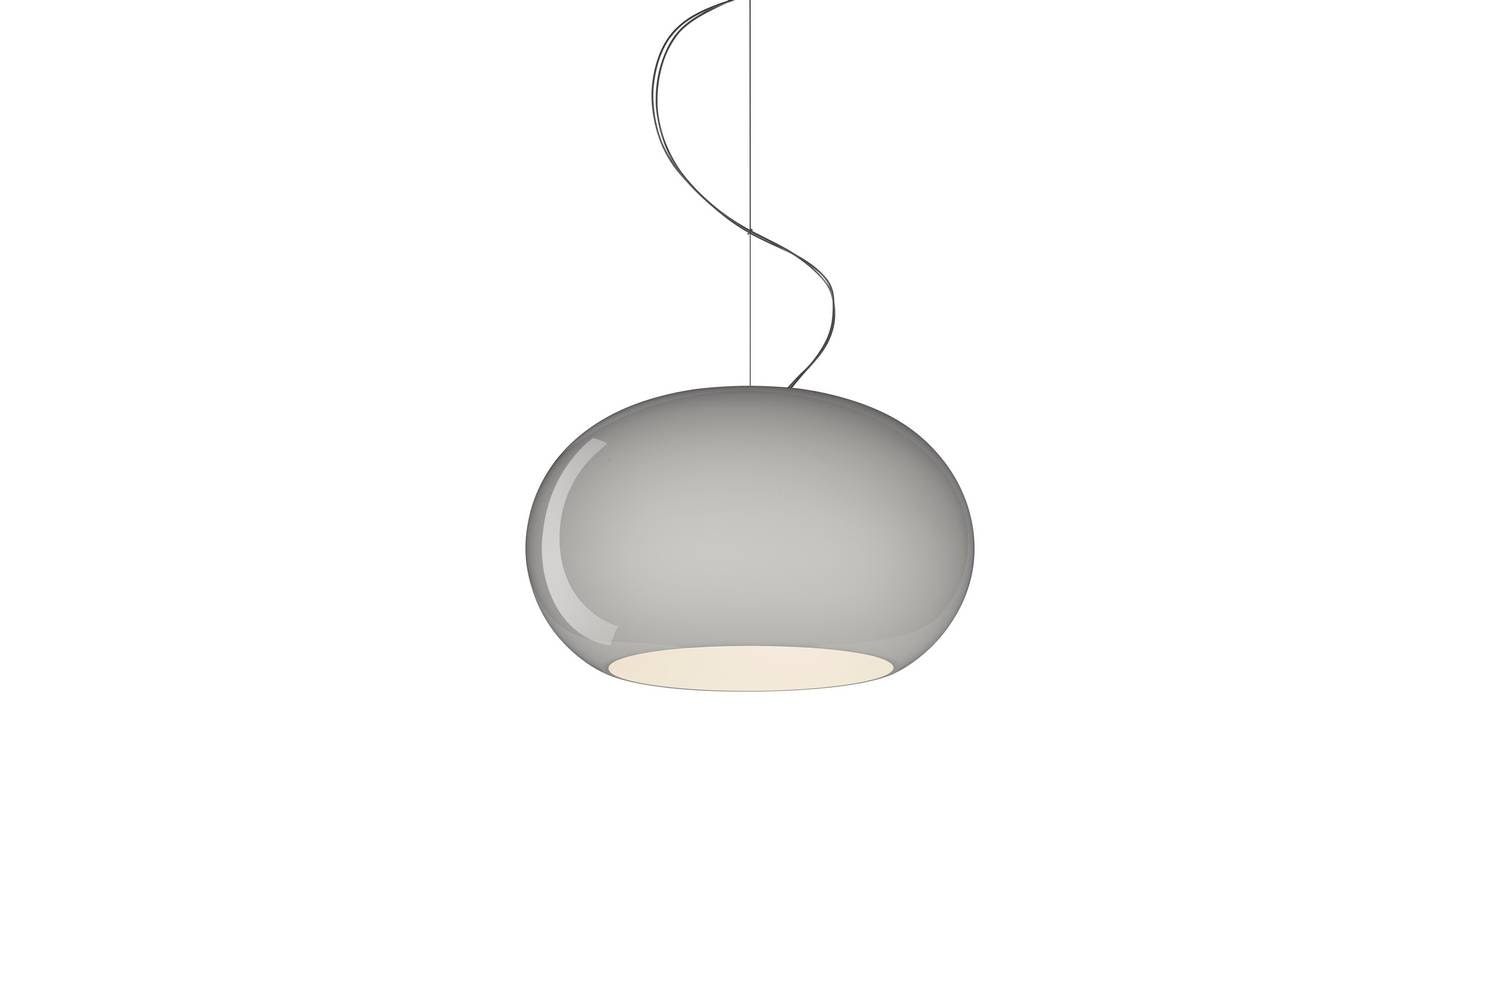 Buds Suspension Lamp by Rodolfo Dordoni for Foscarini